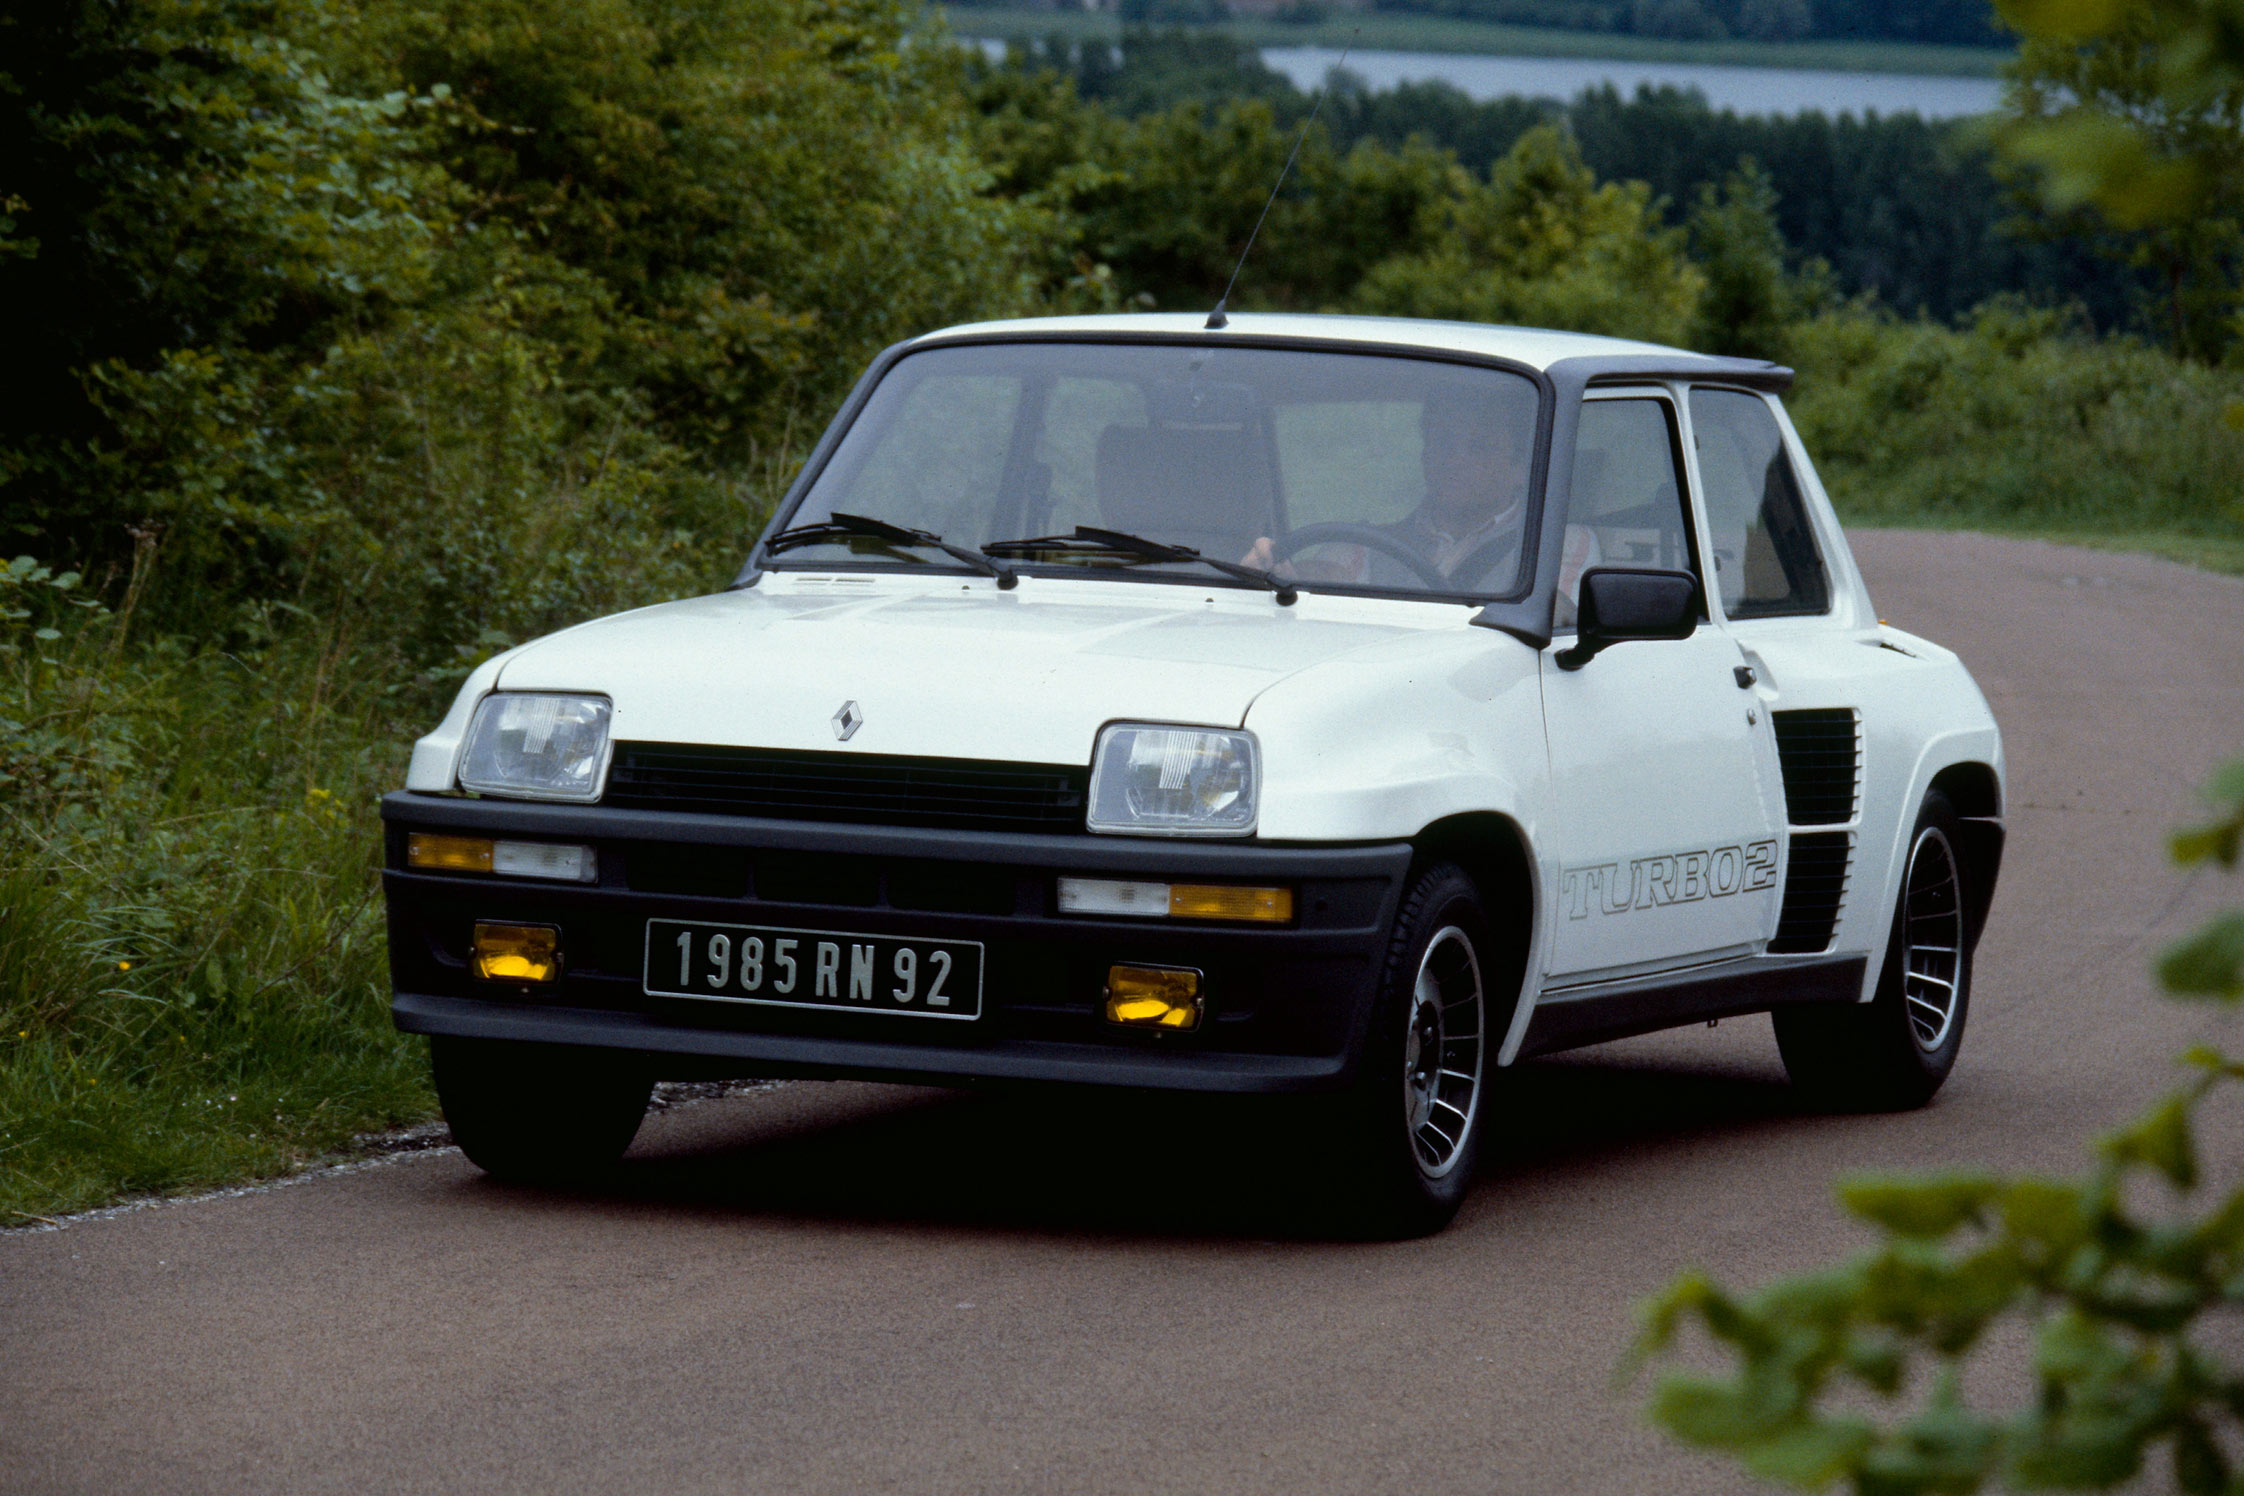 renault 5 turbo 2 1985 les trente ans de la r5 turbo diaporama photo. Black Bedroom Furniture Sets. Home Design Ideas